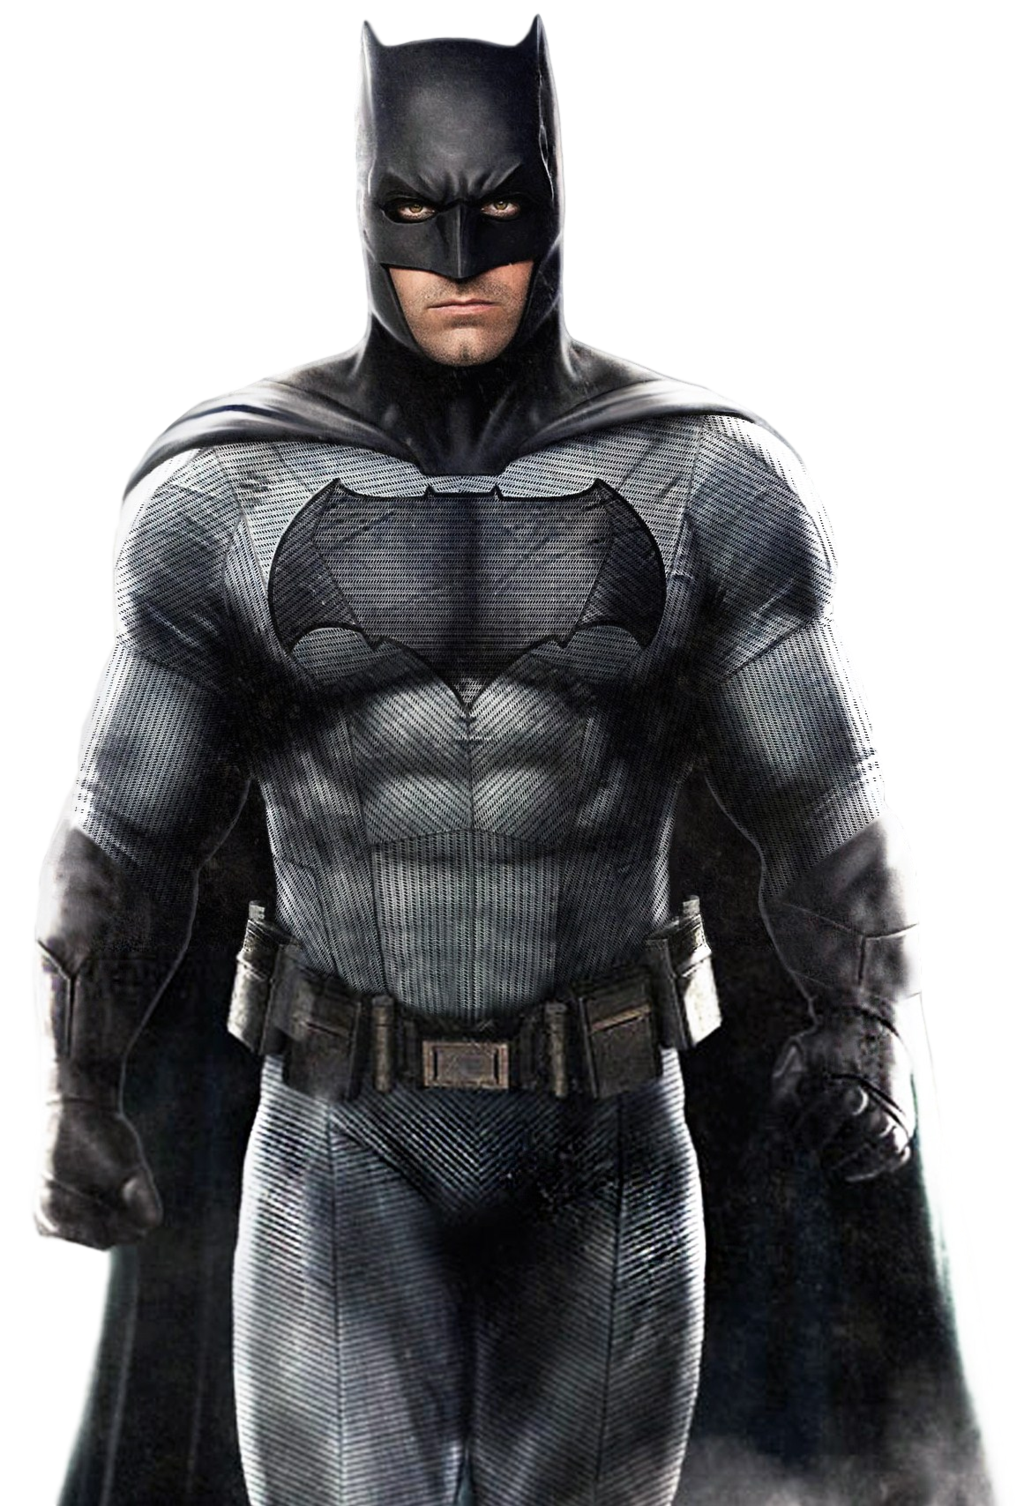 Ben affleck batman png. Bvs transparent background by